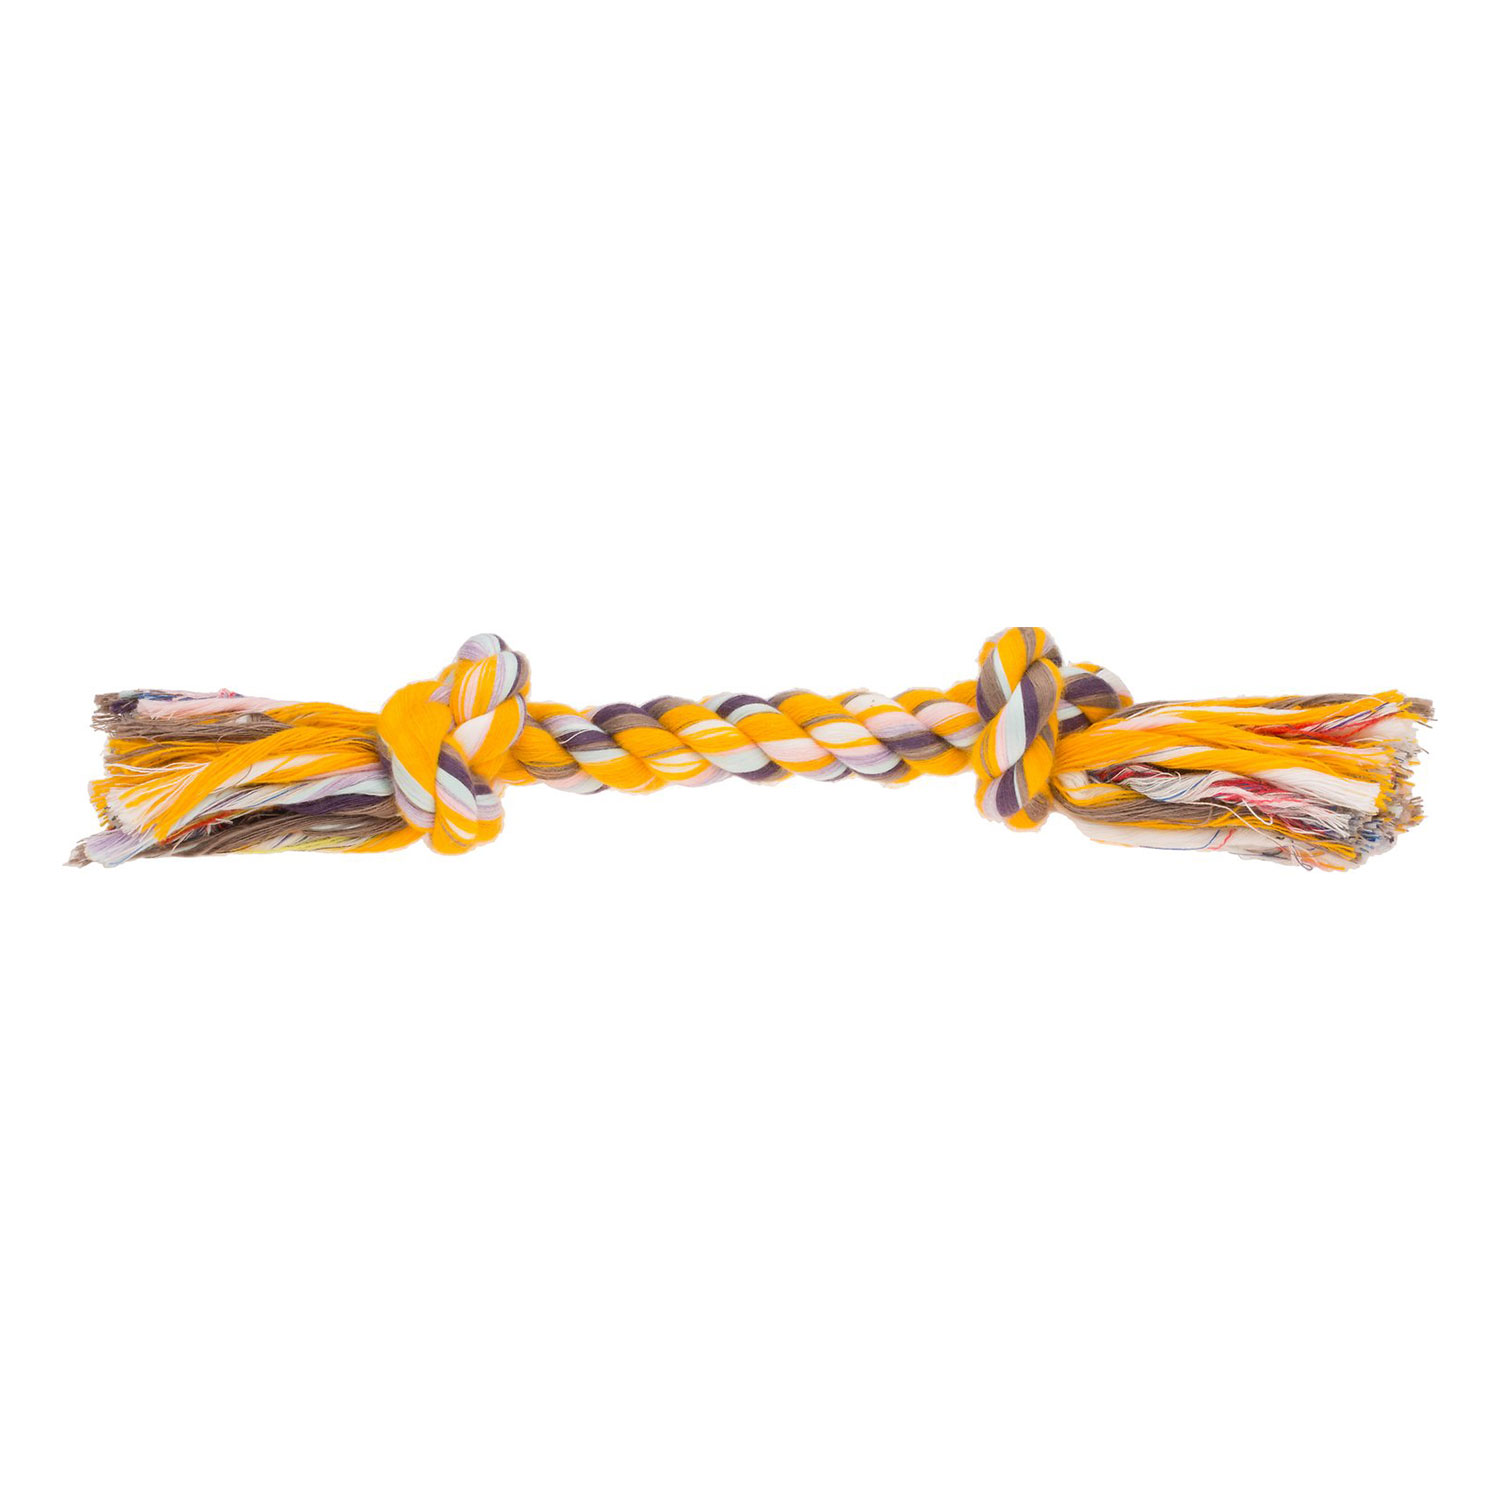 booda multi color knot rope dog toy